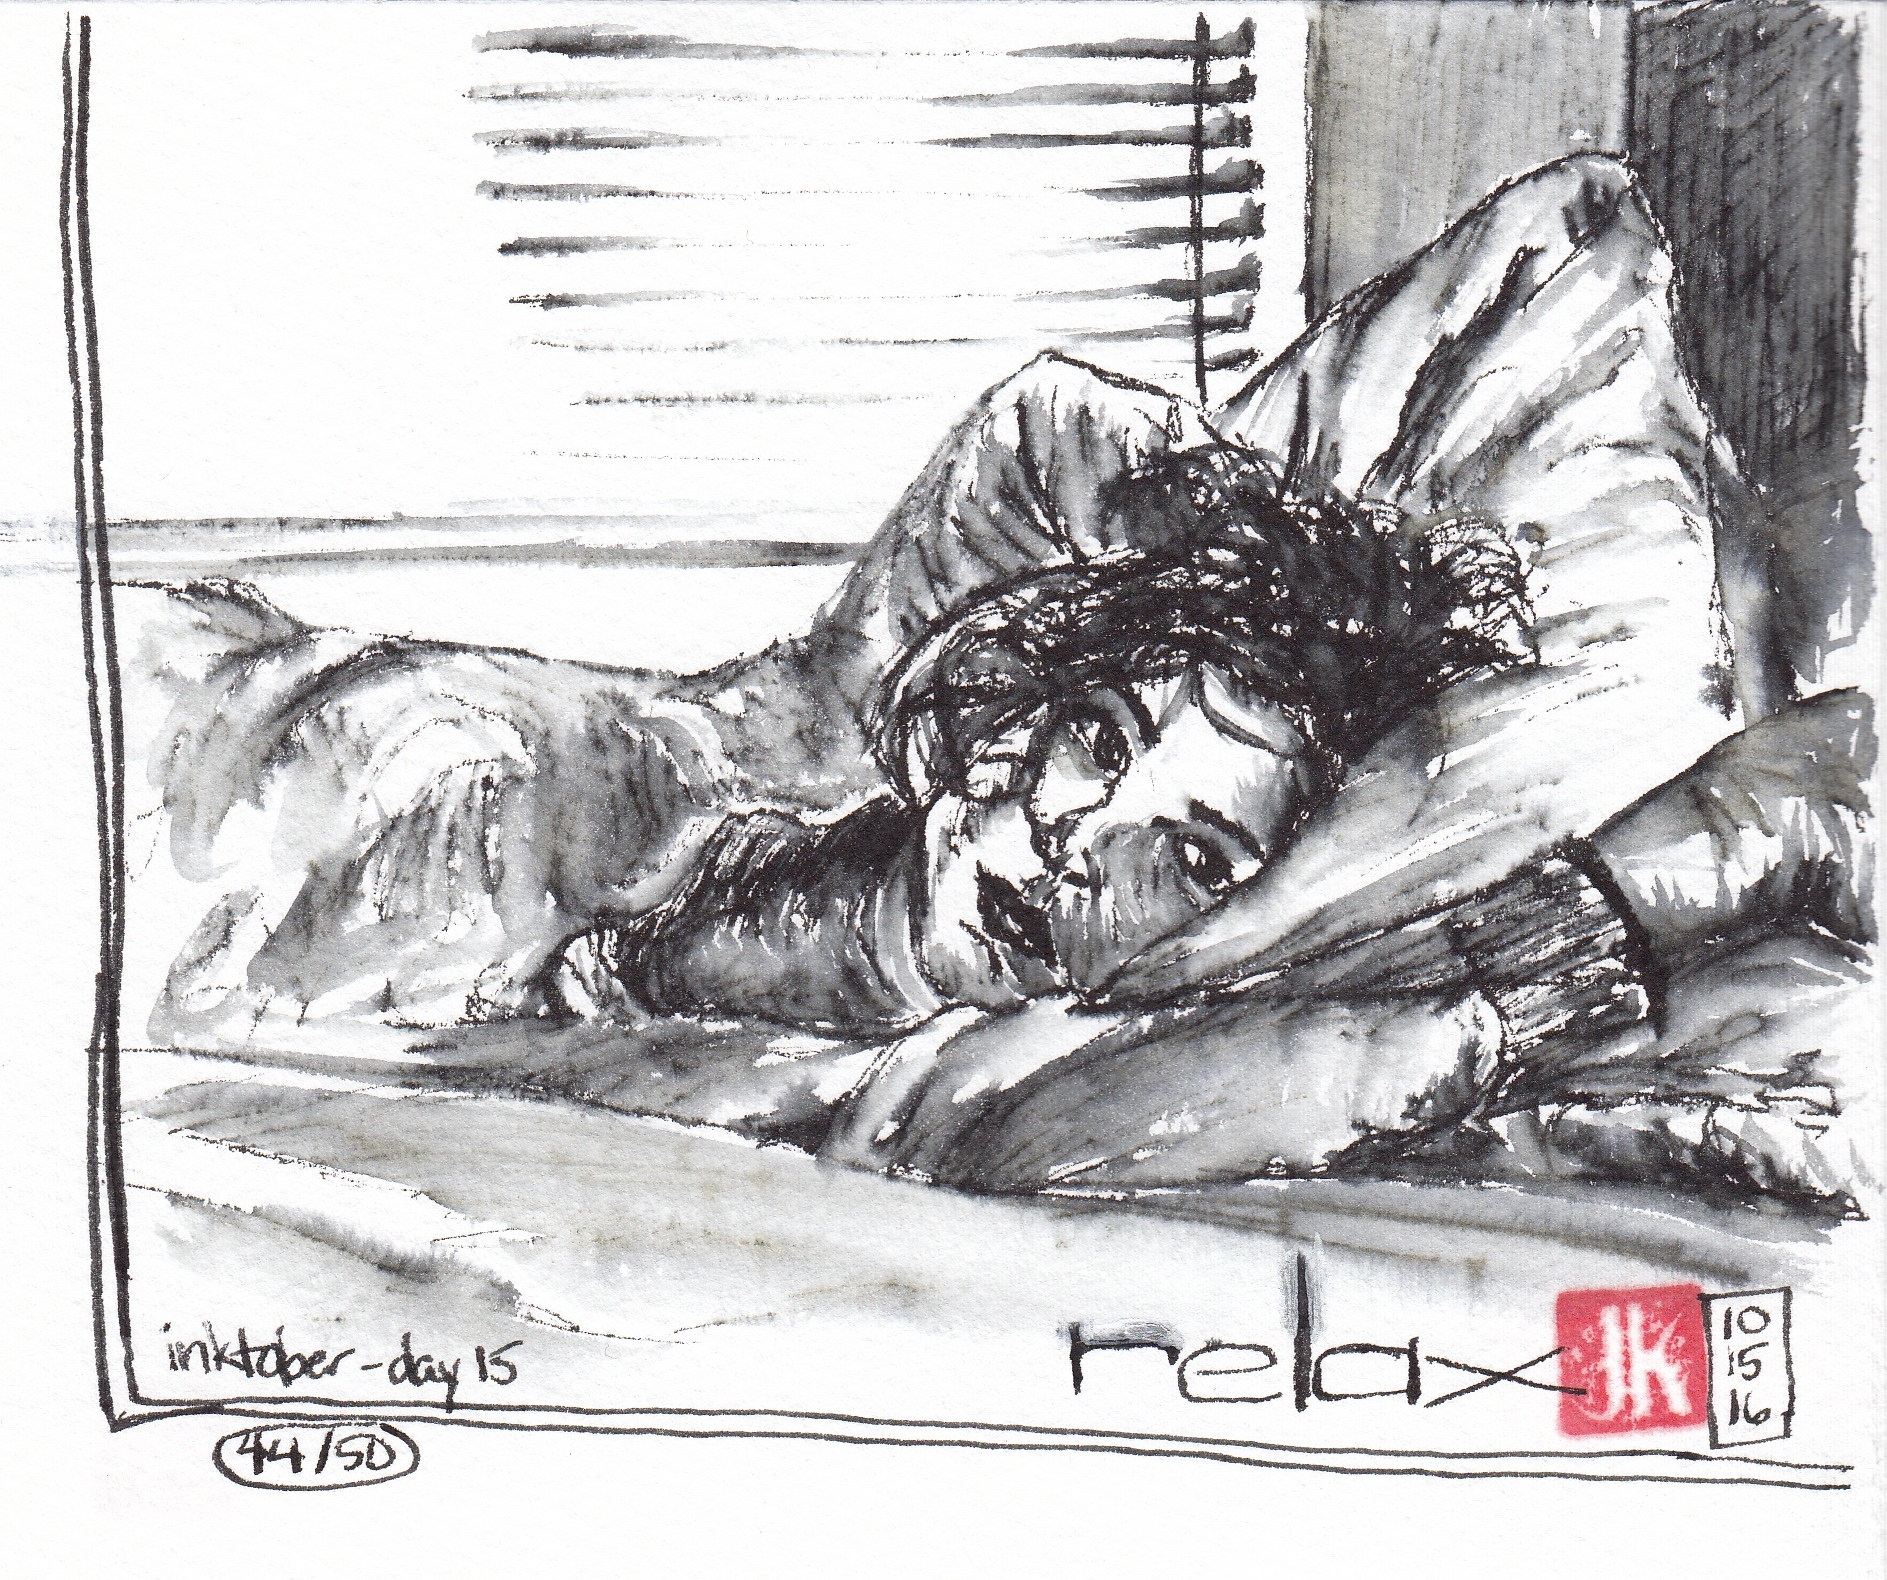 Day 15 - Relax